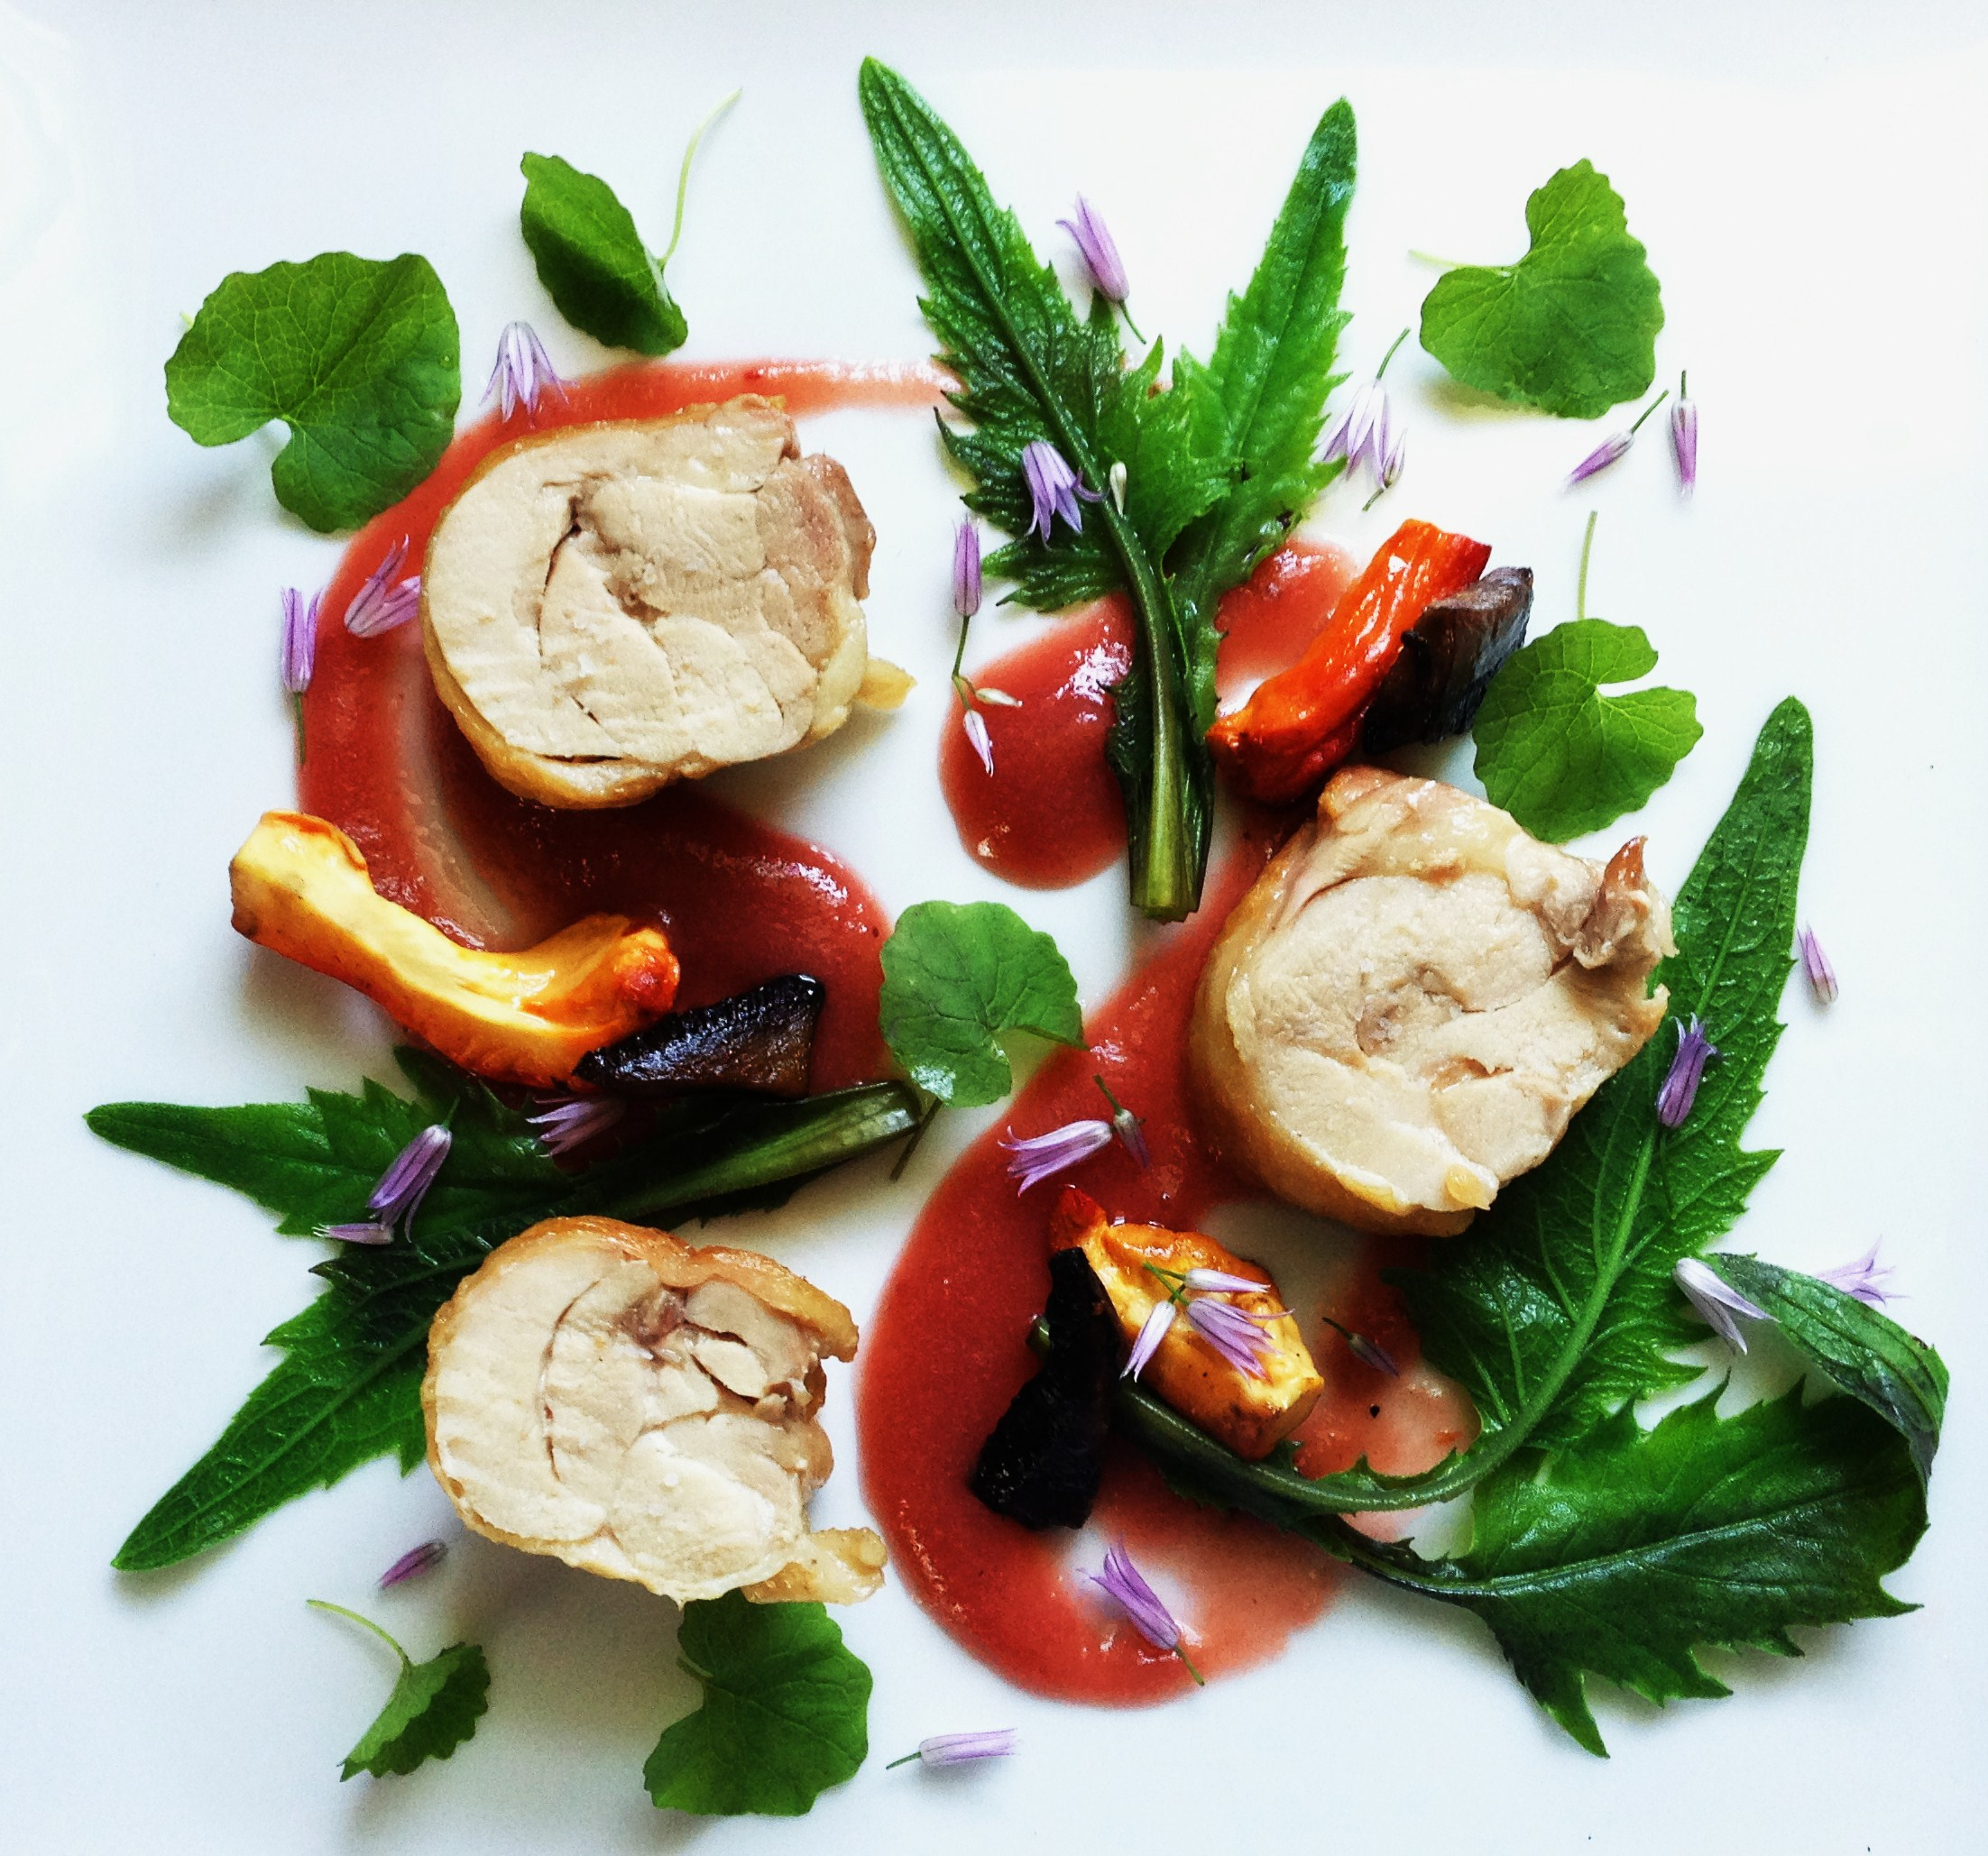 Chicken-Thigh-Roulade-with-chicken-and-agaric-mushrooms-rhubarb-sauce ...